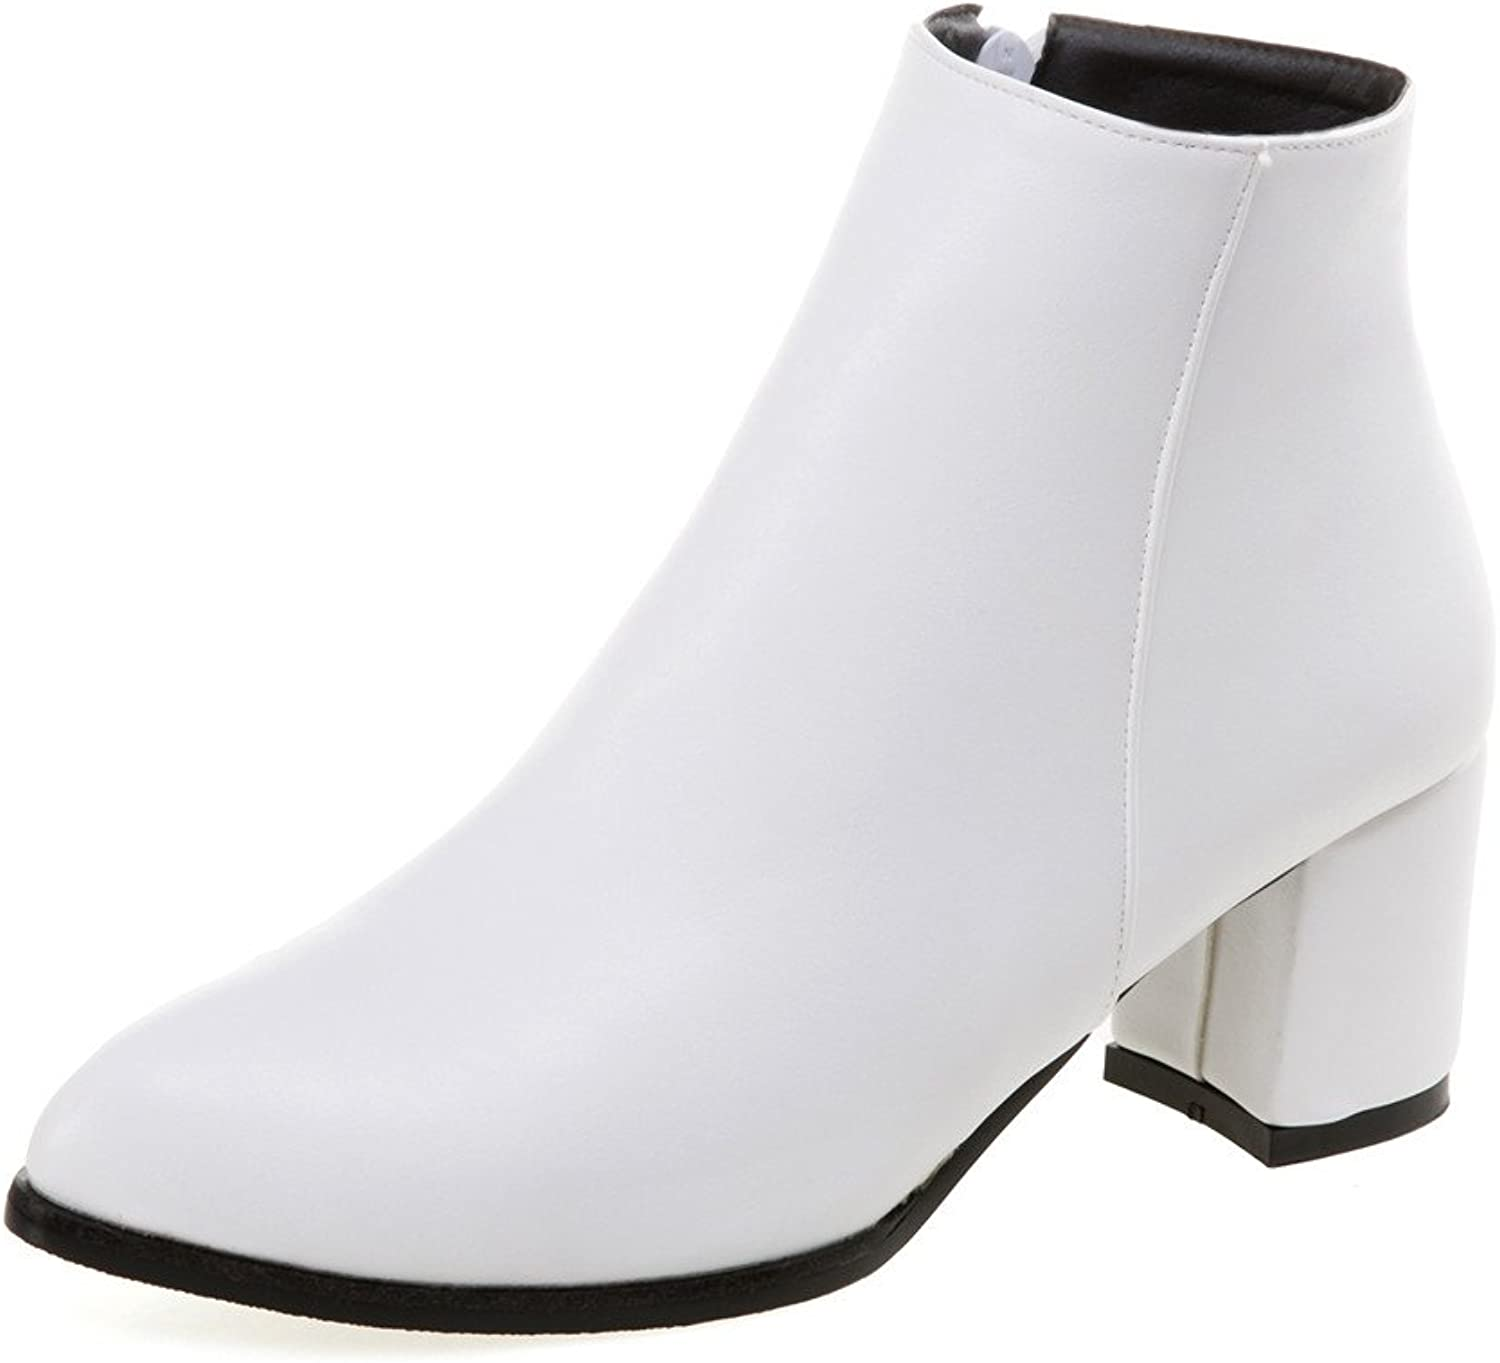 DoraTasia Sexy High Hell Women's Ankle Boots